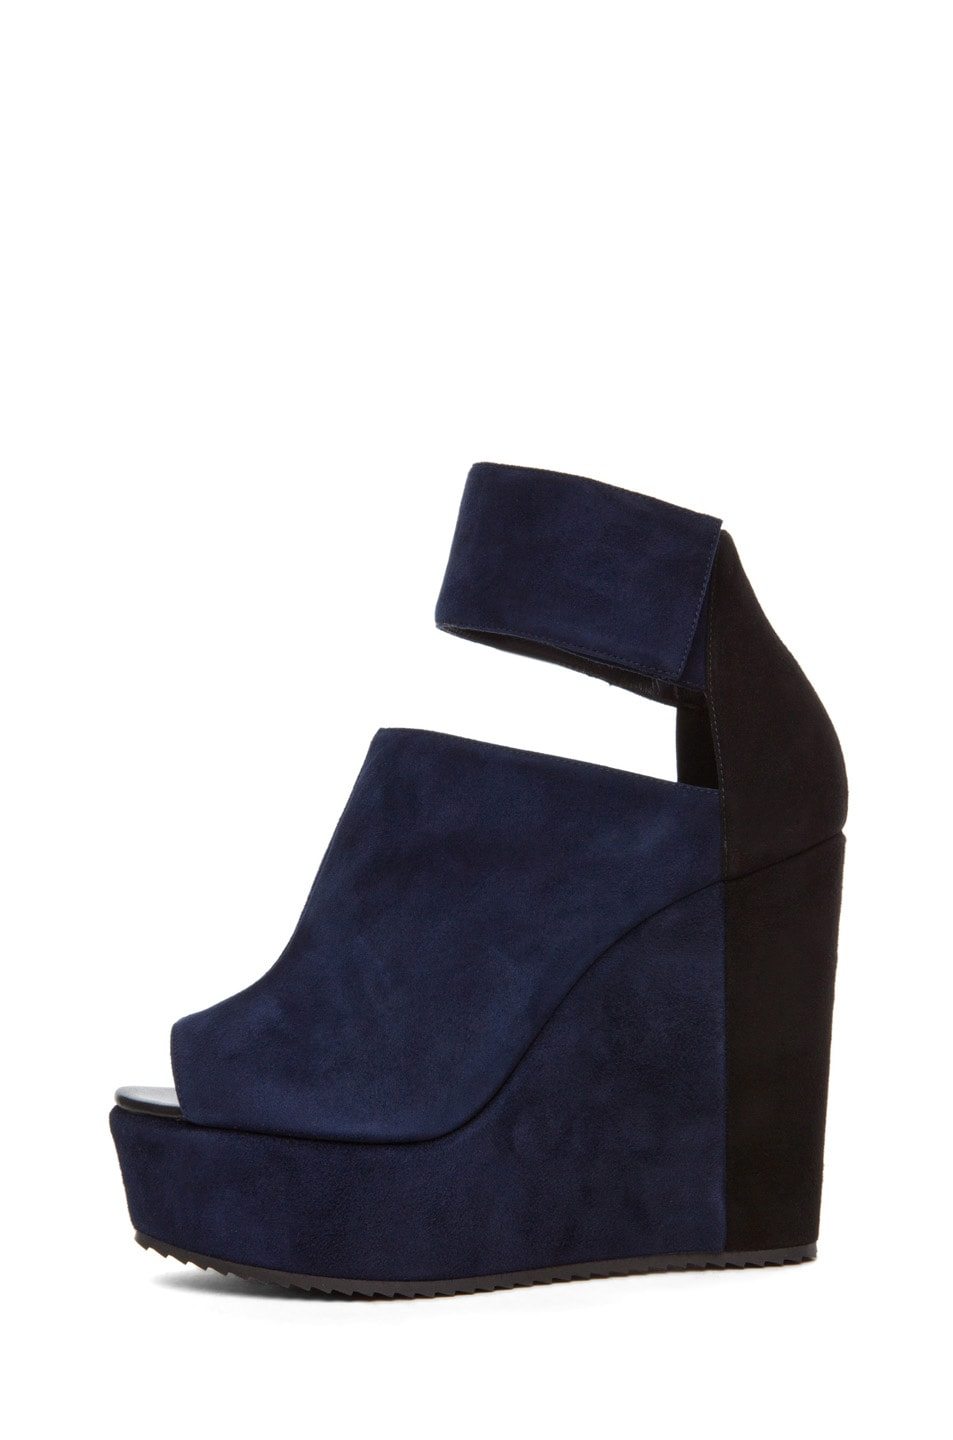 Image 2 of Pierre Hardy Colorblocked Wedge in Navy